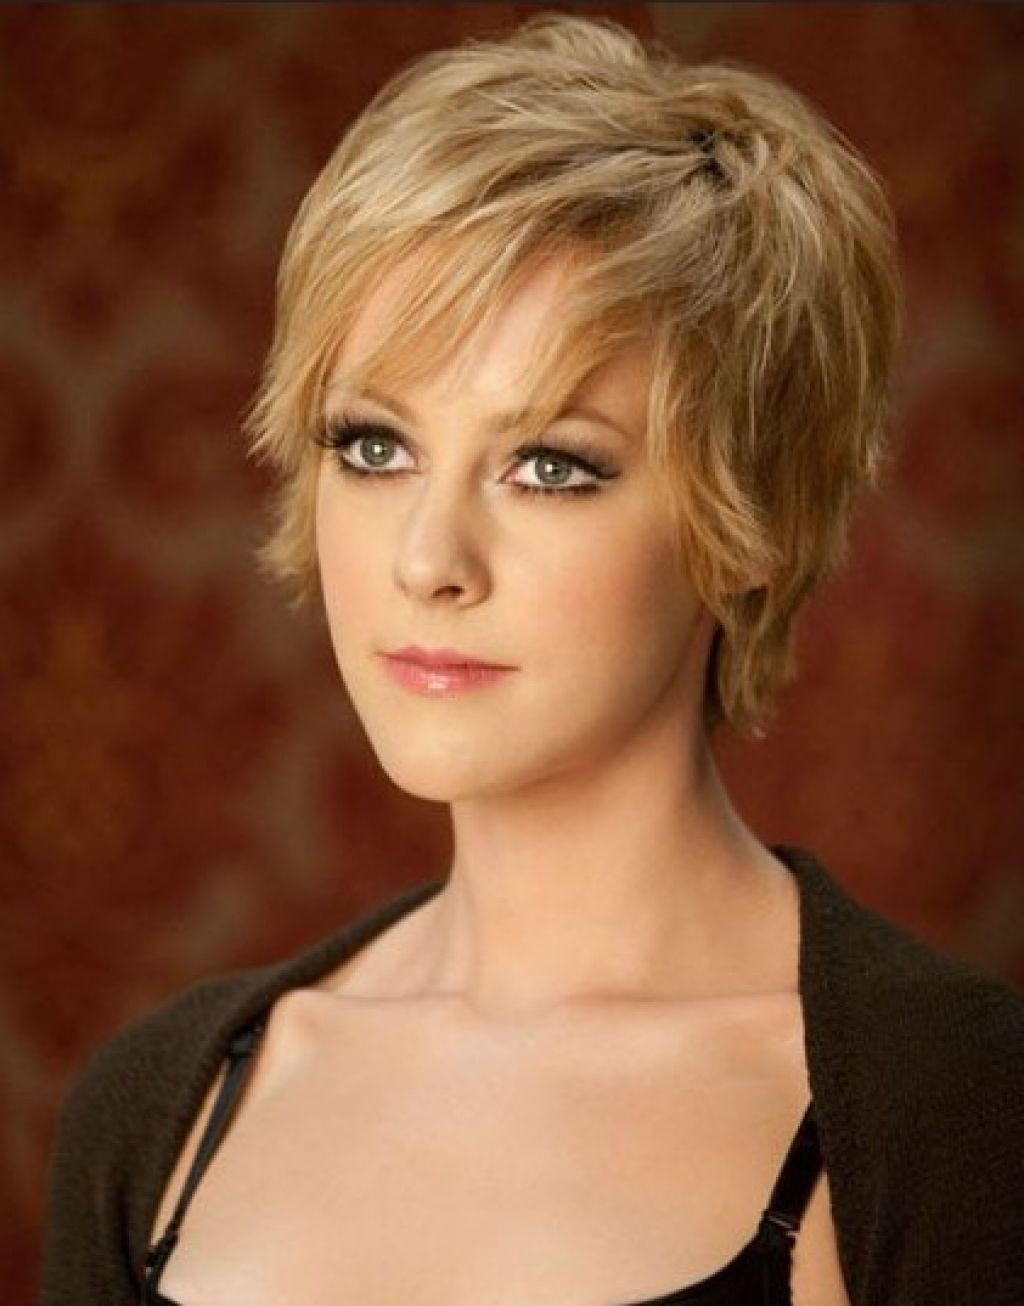 Best ideas about Short Hairstyles For Women With Fine Hair . Save or Pin 50 Gorgeous Hairstyles for Fine Hair Women s Fave HairStyles Now.